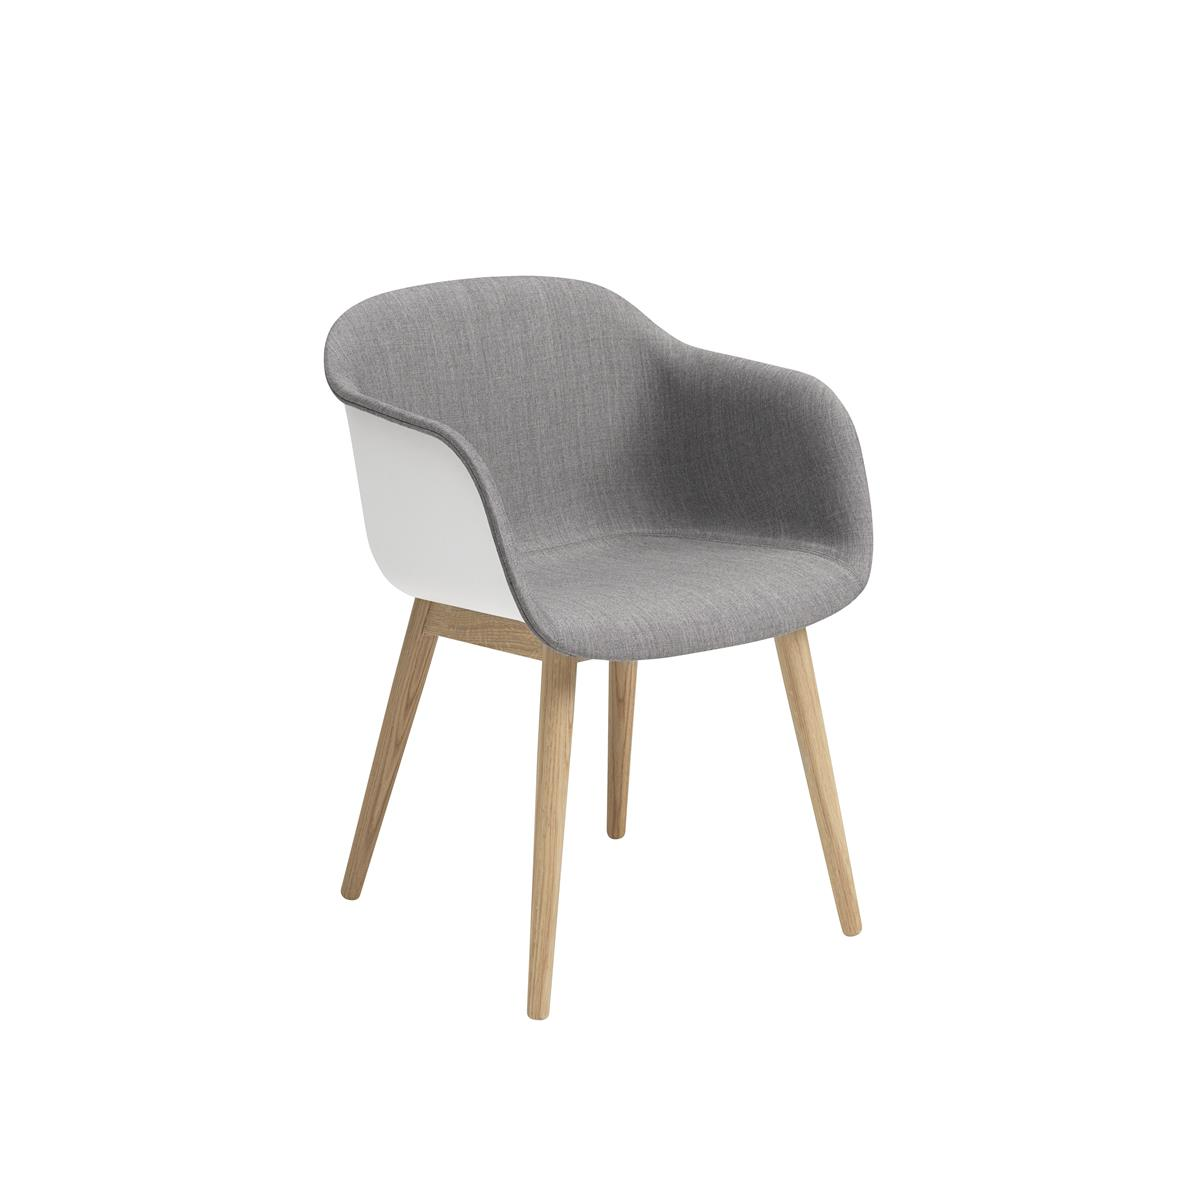 Fiber Armchair Wood base - Kvadrat Remix & ben i eik